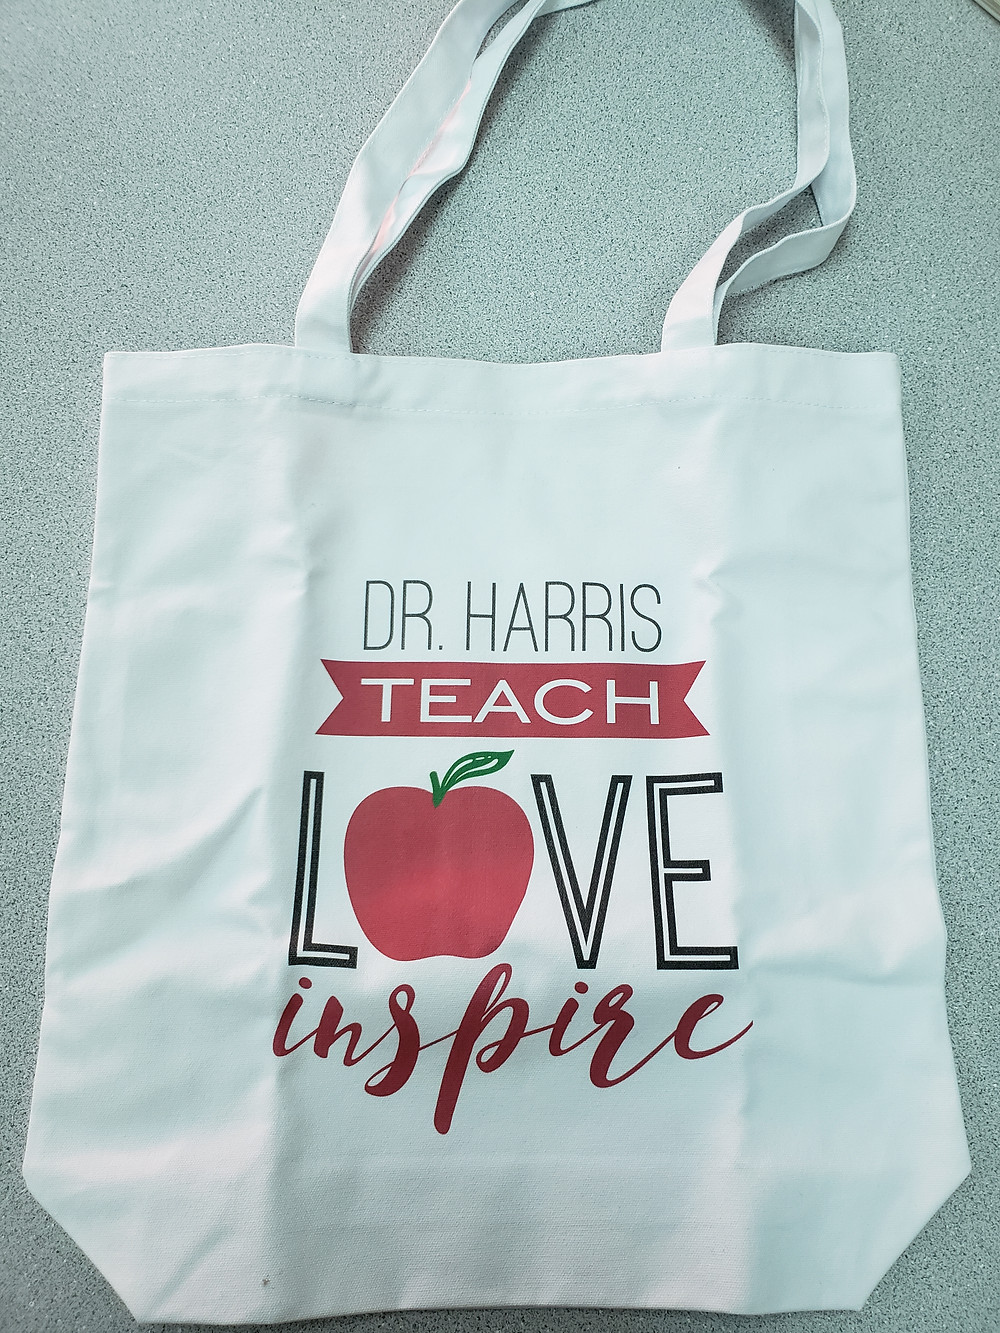 Personalized teacher bag that teachers really want that reads Dr. Harris : Teach, love, inspire.